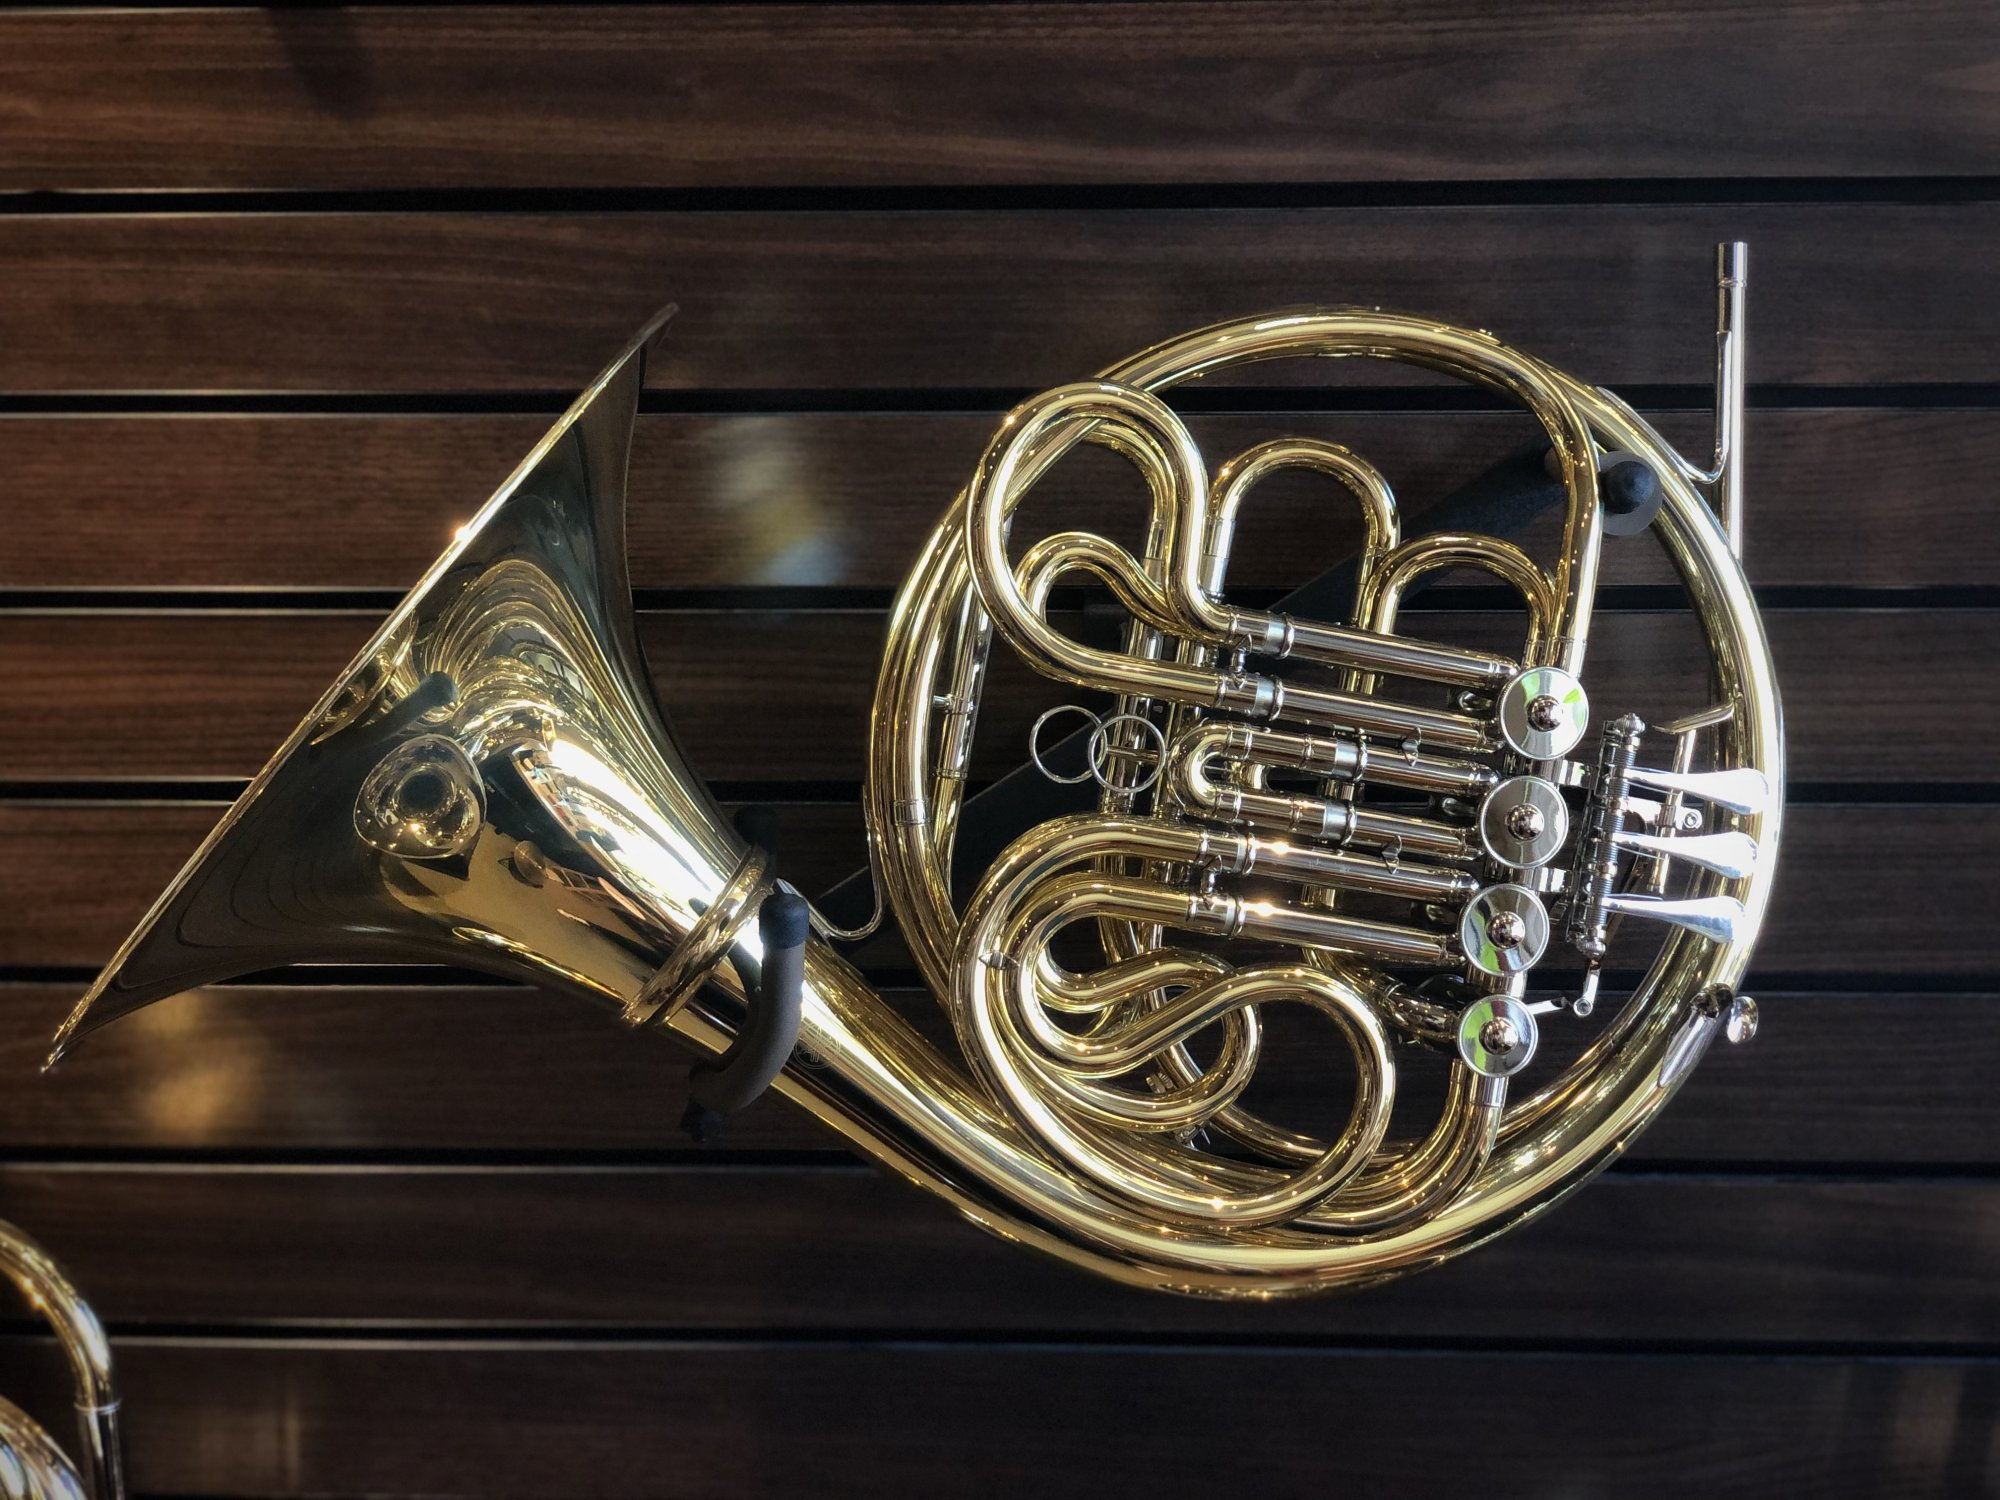 Yamaha YHR-671D Double French Horn, with Detachable Bell